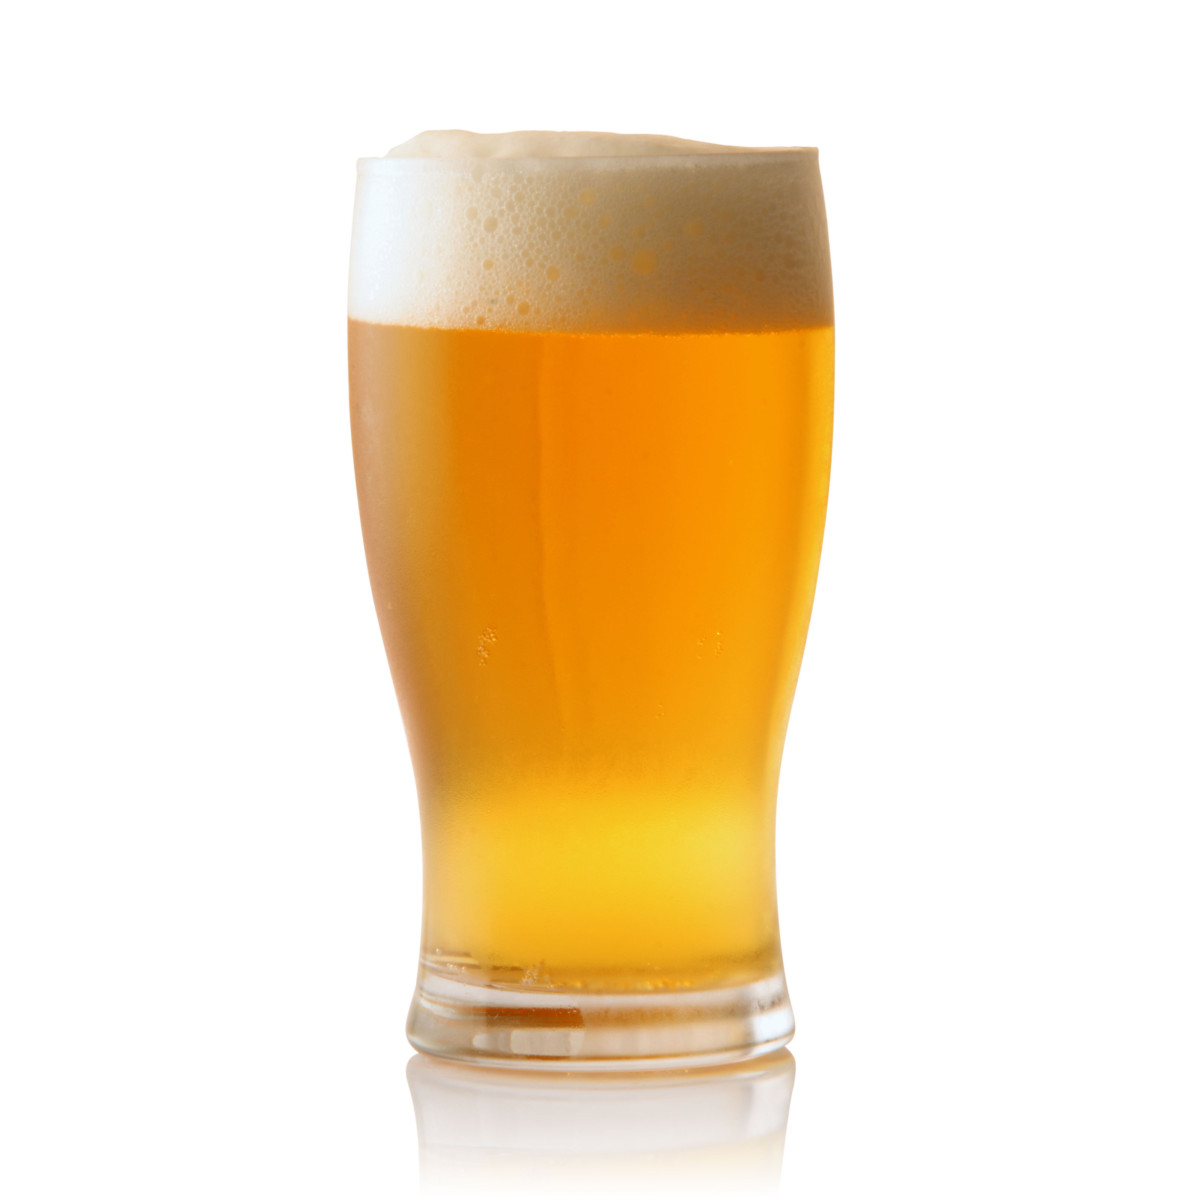 beer-single-tall-glass-on-white-background